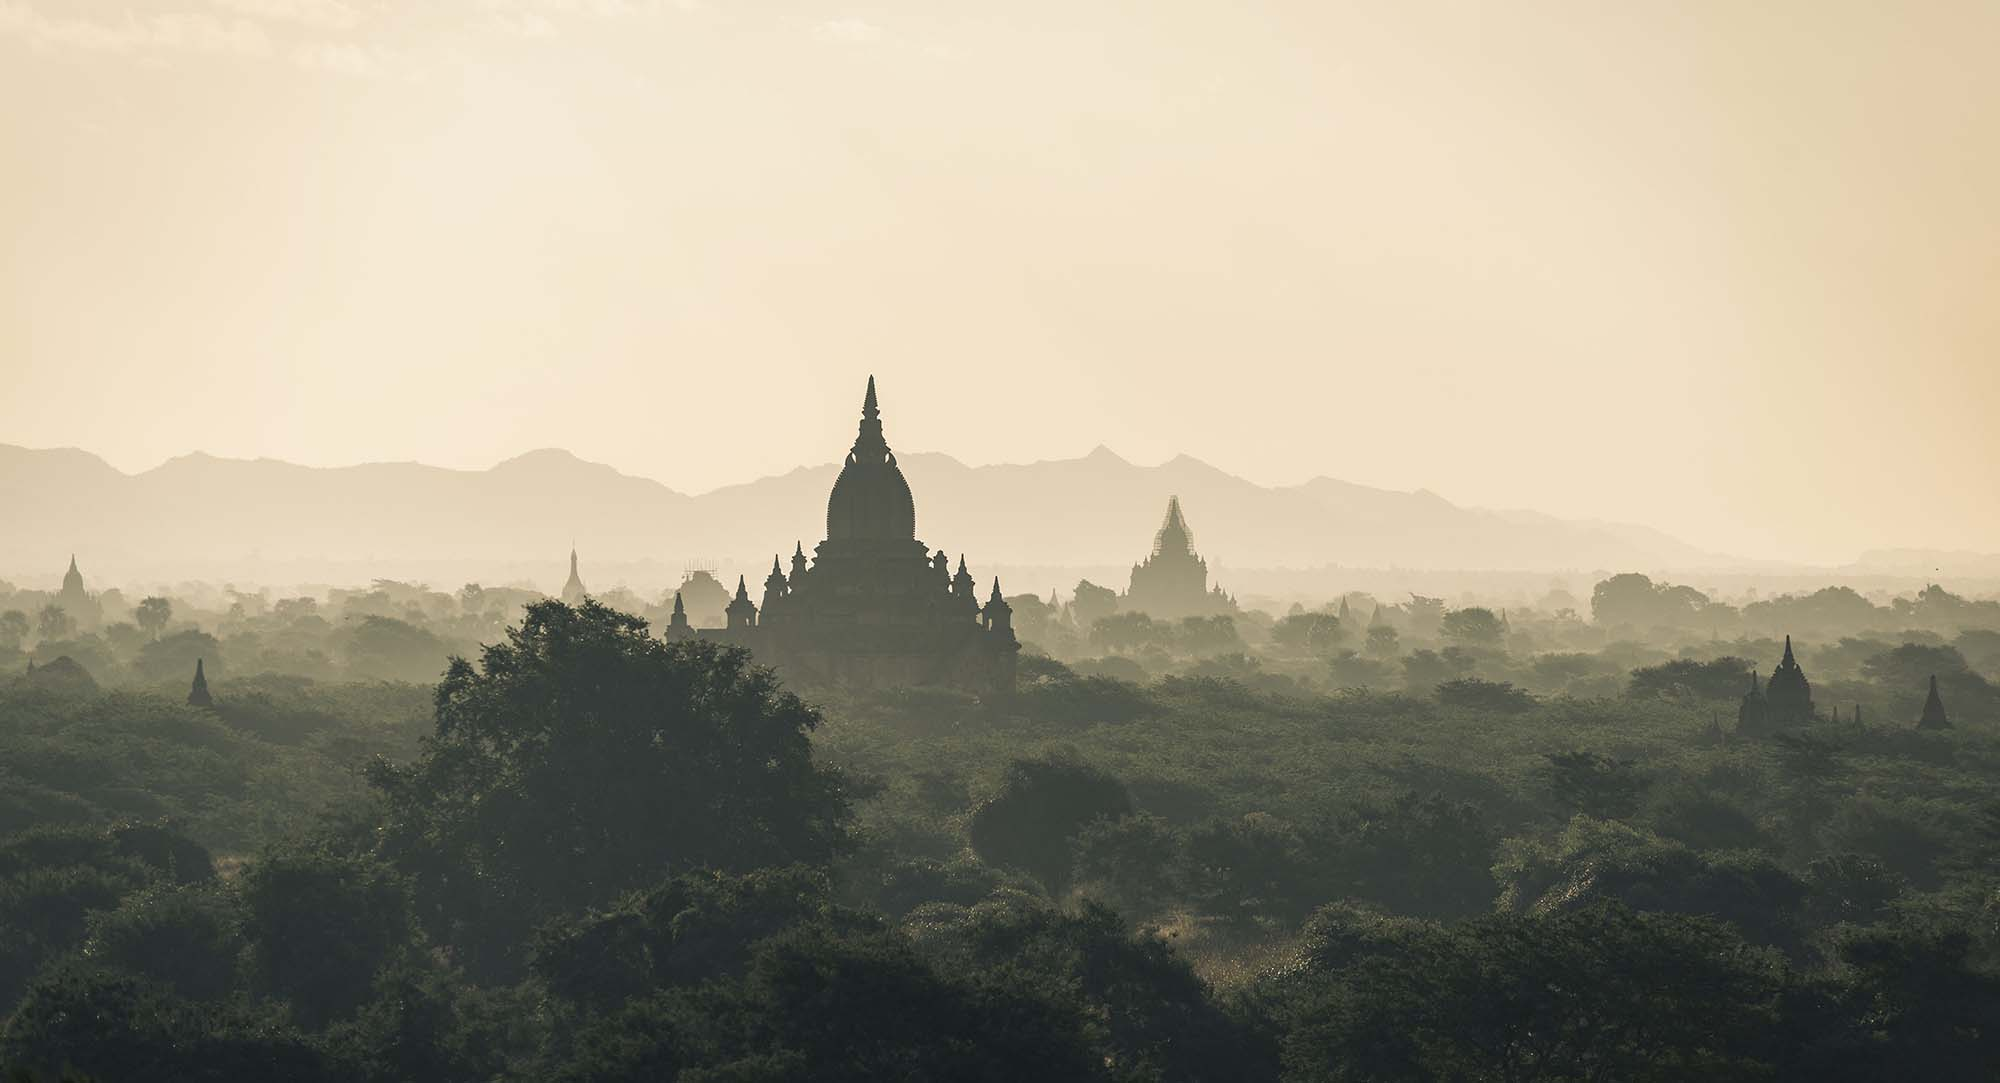 Picture of temples in the jungle in south Asia